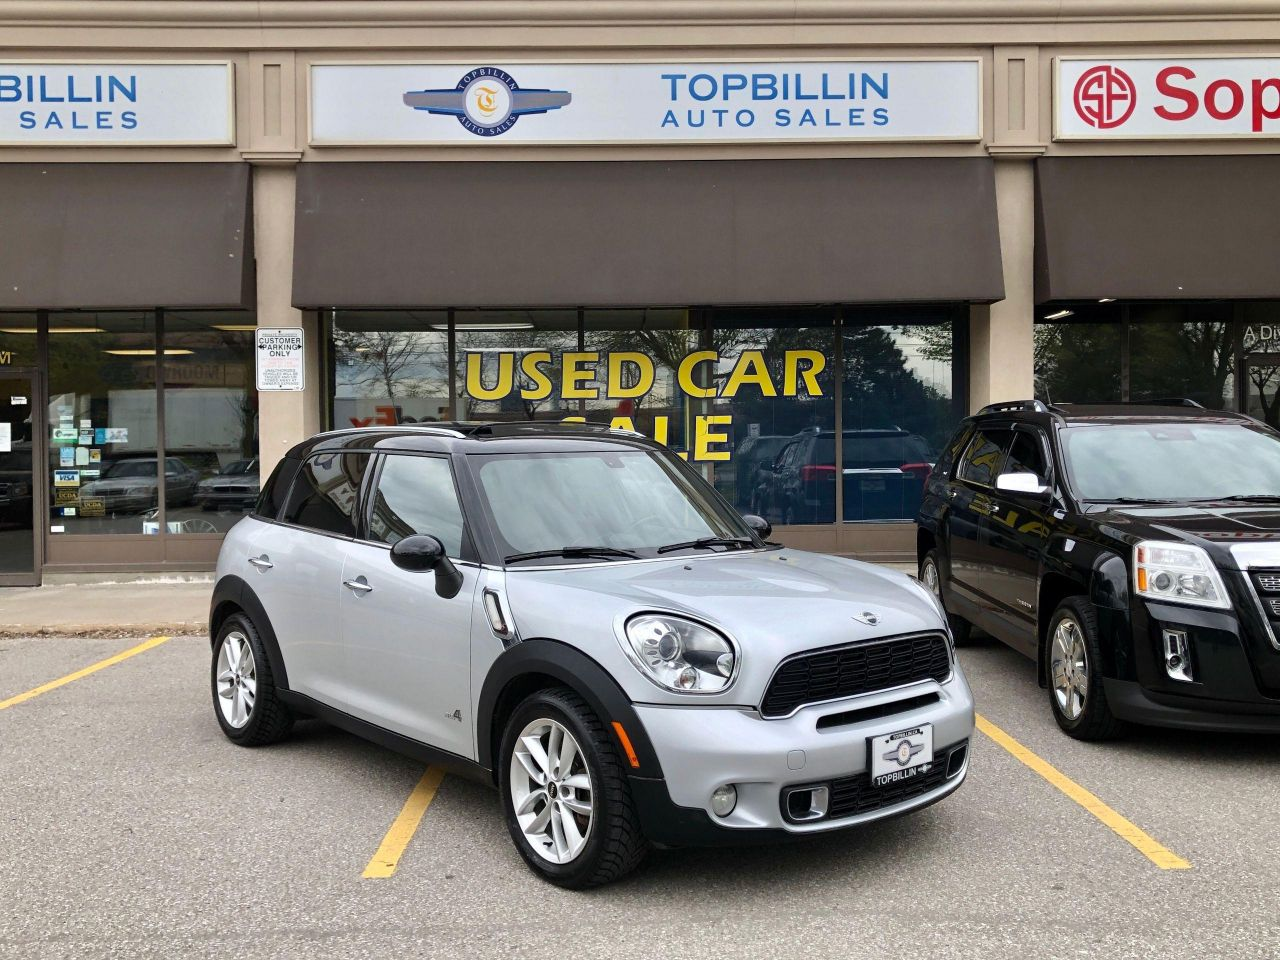 2012 MINI Cooper Countryman S AWD, Pano Roof, Leather